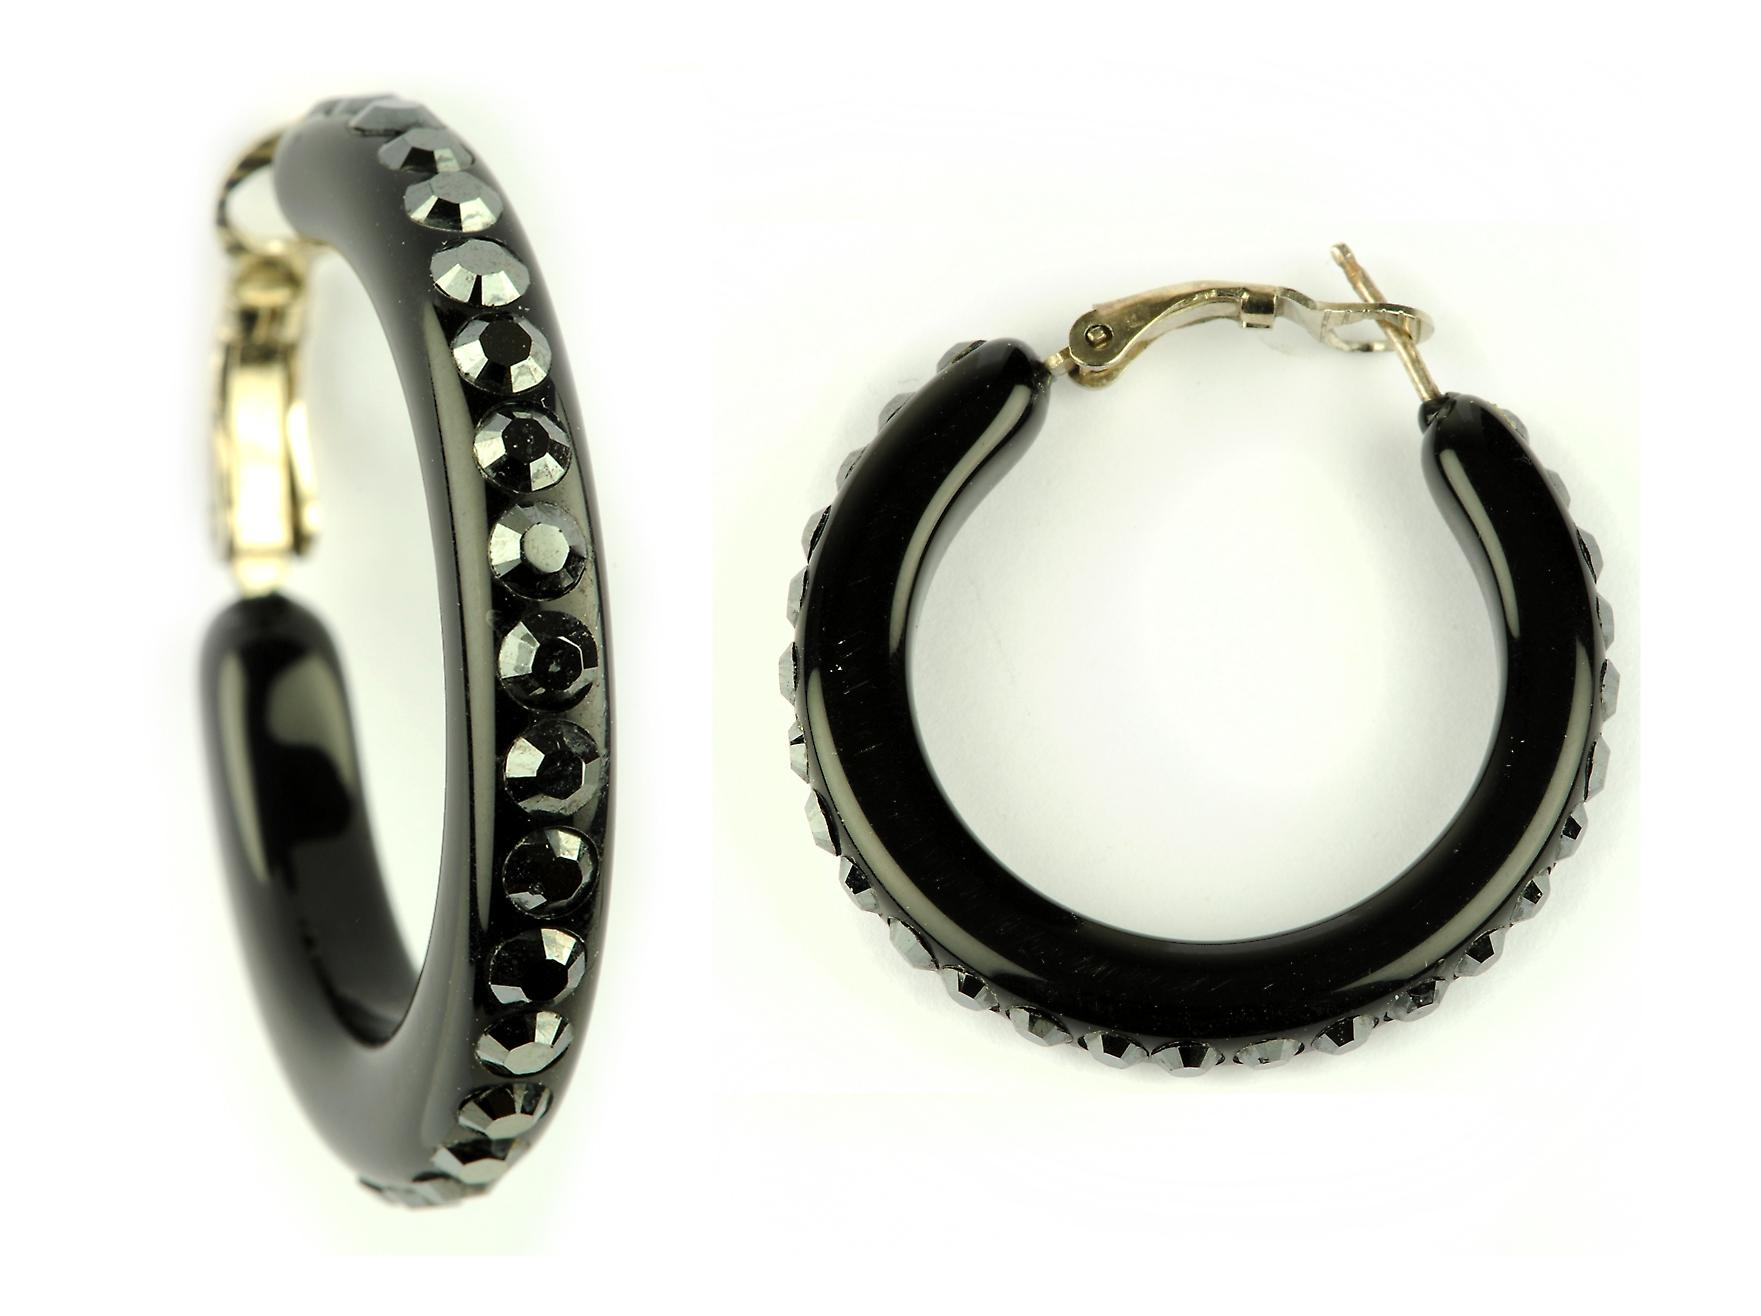 Waooh - Fashion Jewellery - WJ0714 - On Earrings with Swarovski Black Stass - Perspex Black Mount